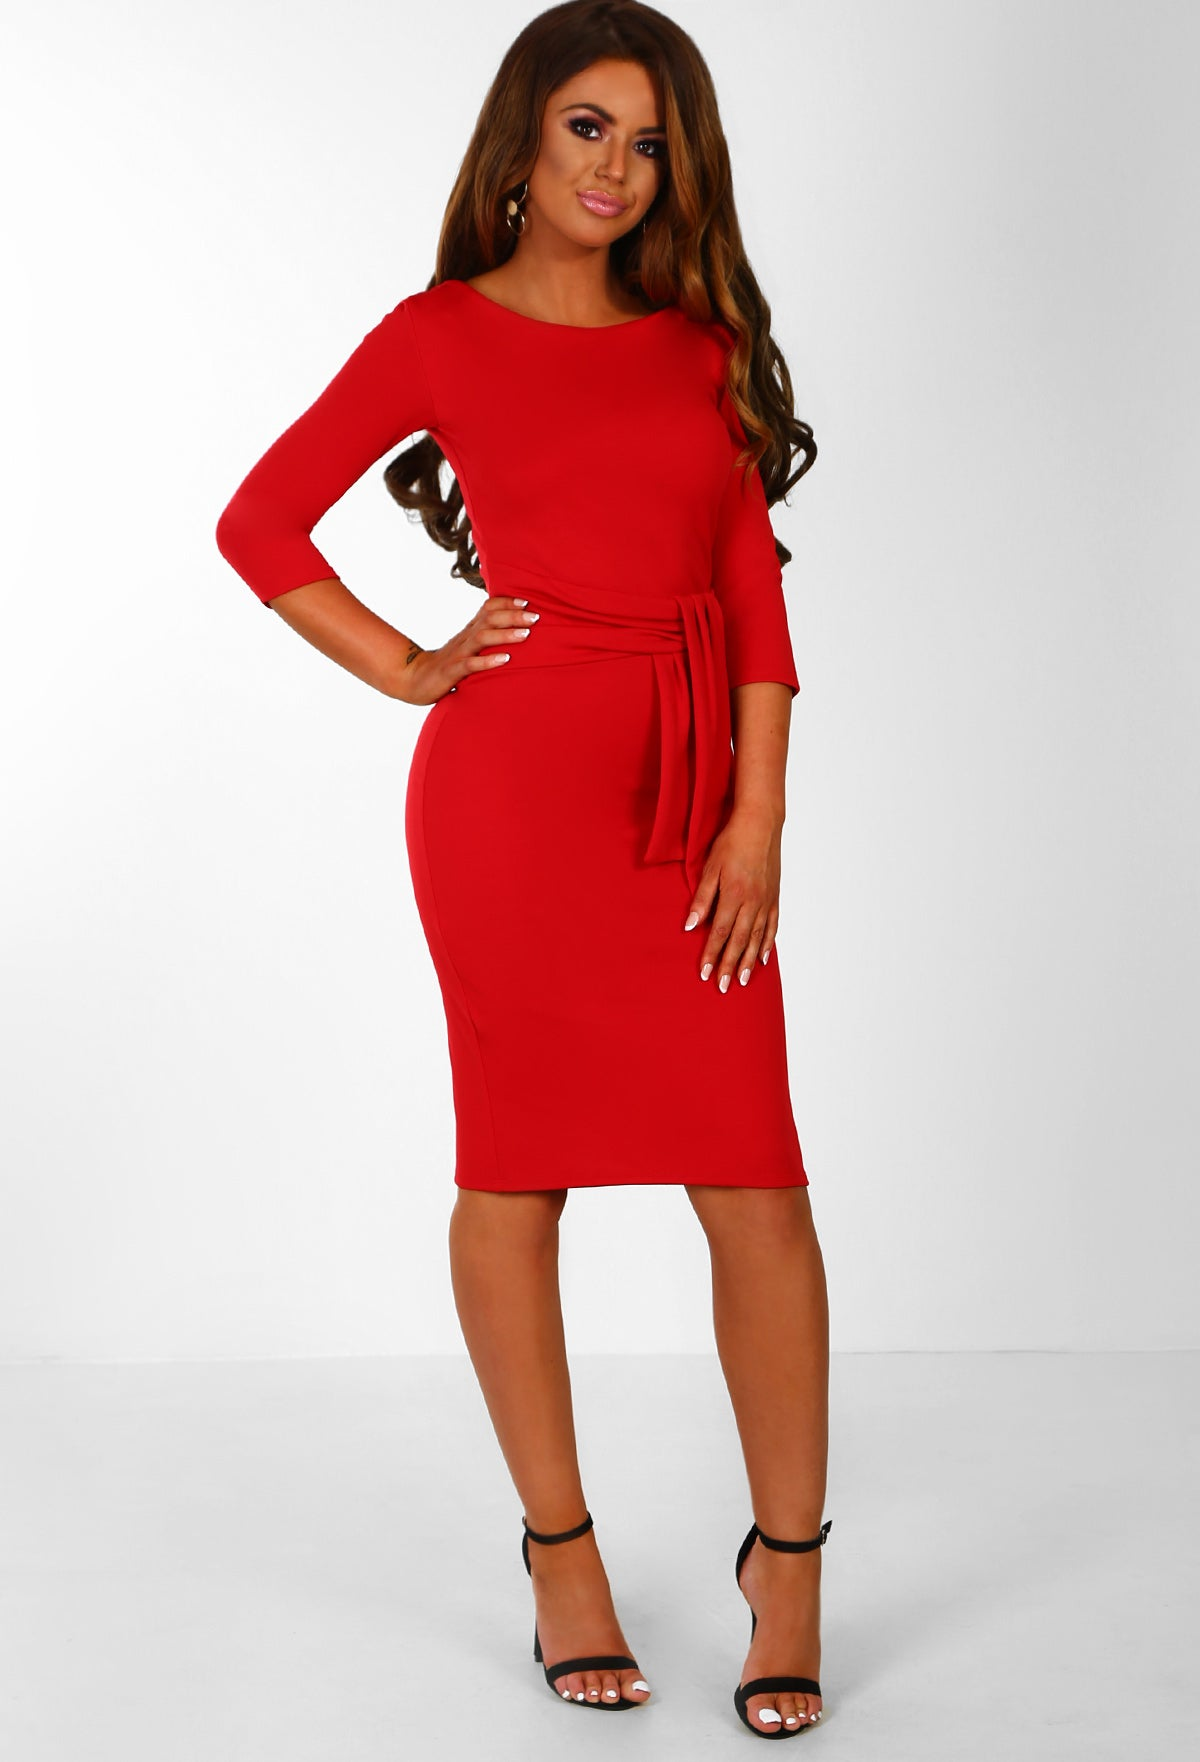 c3656c5e0bfb9 Fool For You Red Belted Bodycon Midi Dress – Pink Boutique UK